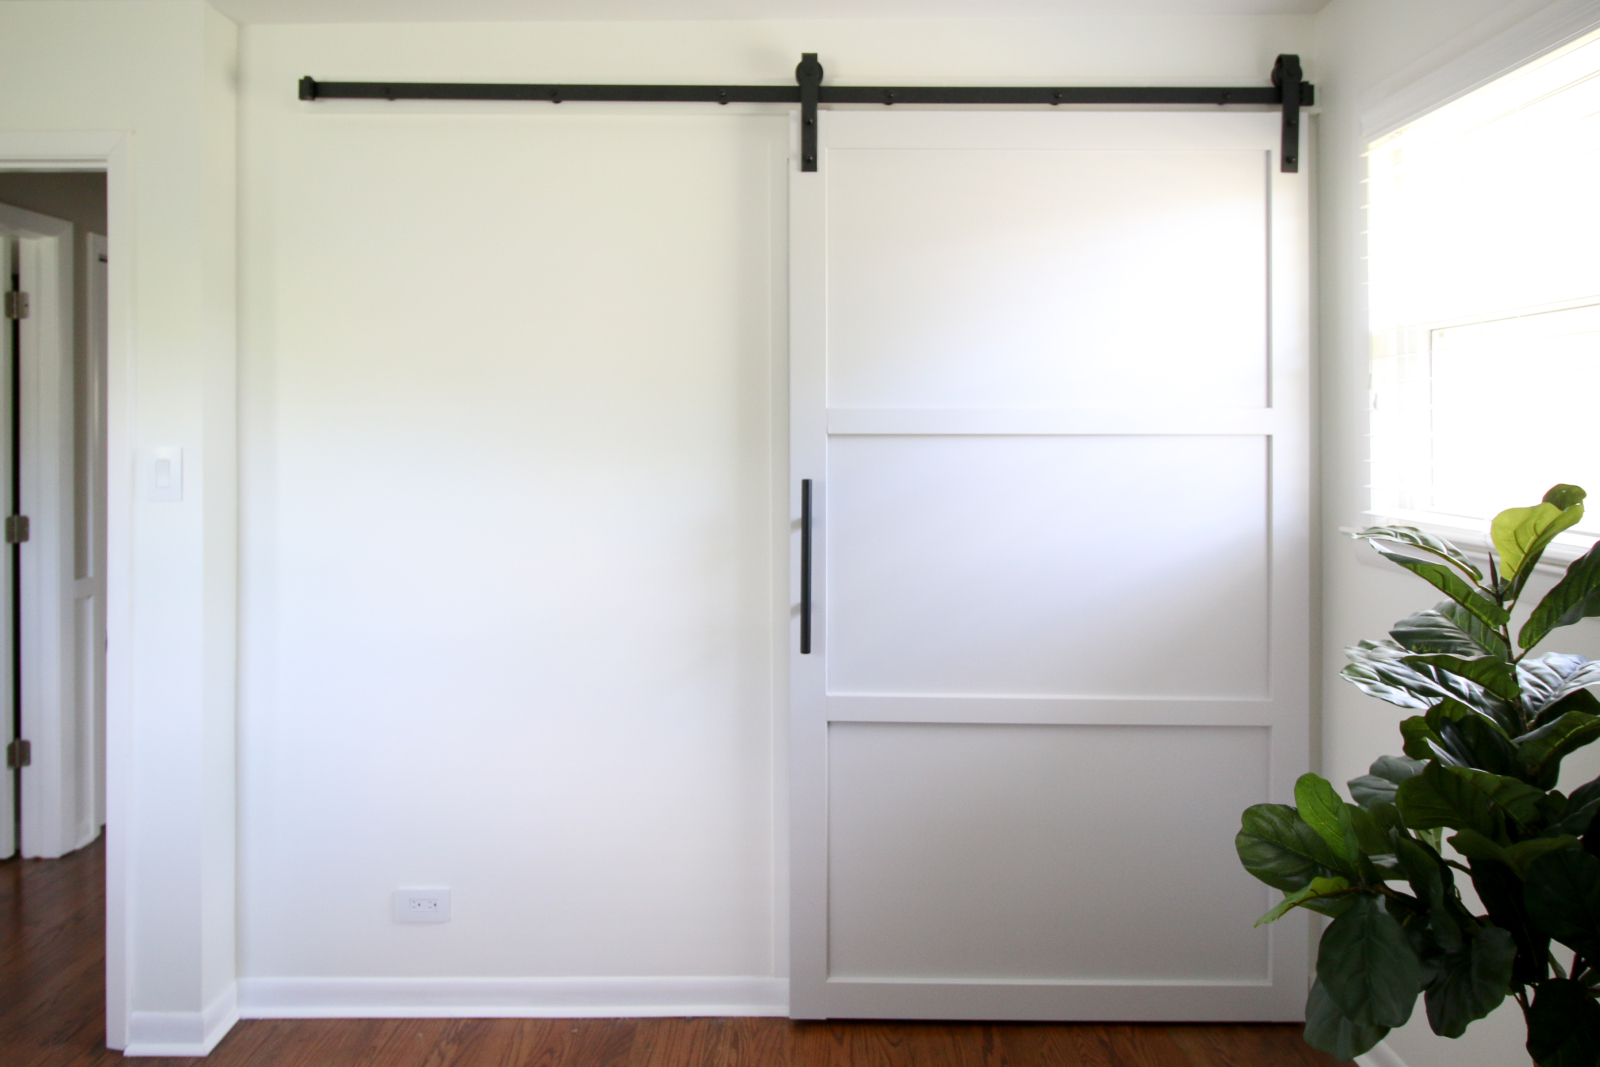 How to build and install a sliding barn door home improvement projects tips guides - Tips keeping sliding doors reliable functional ...